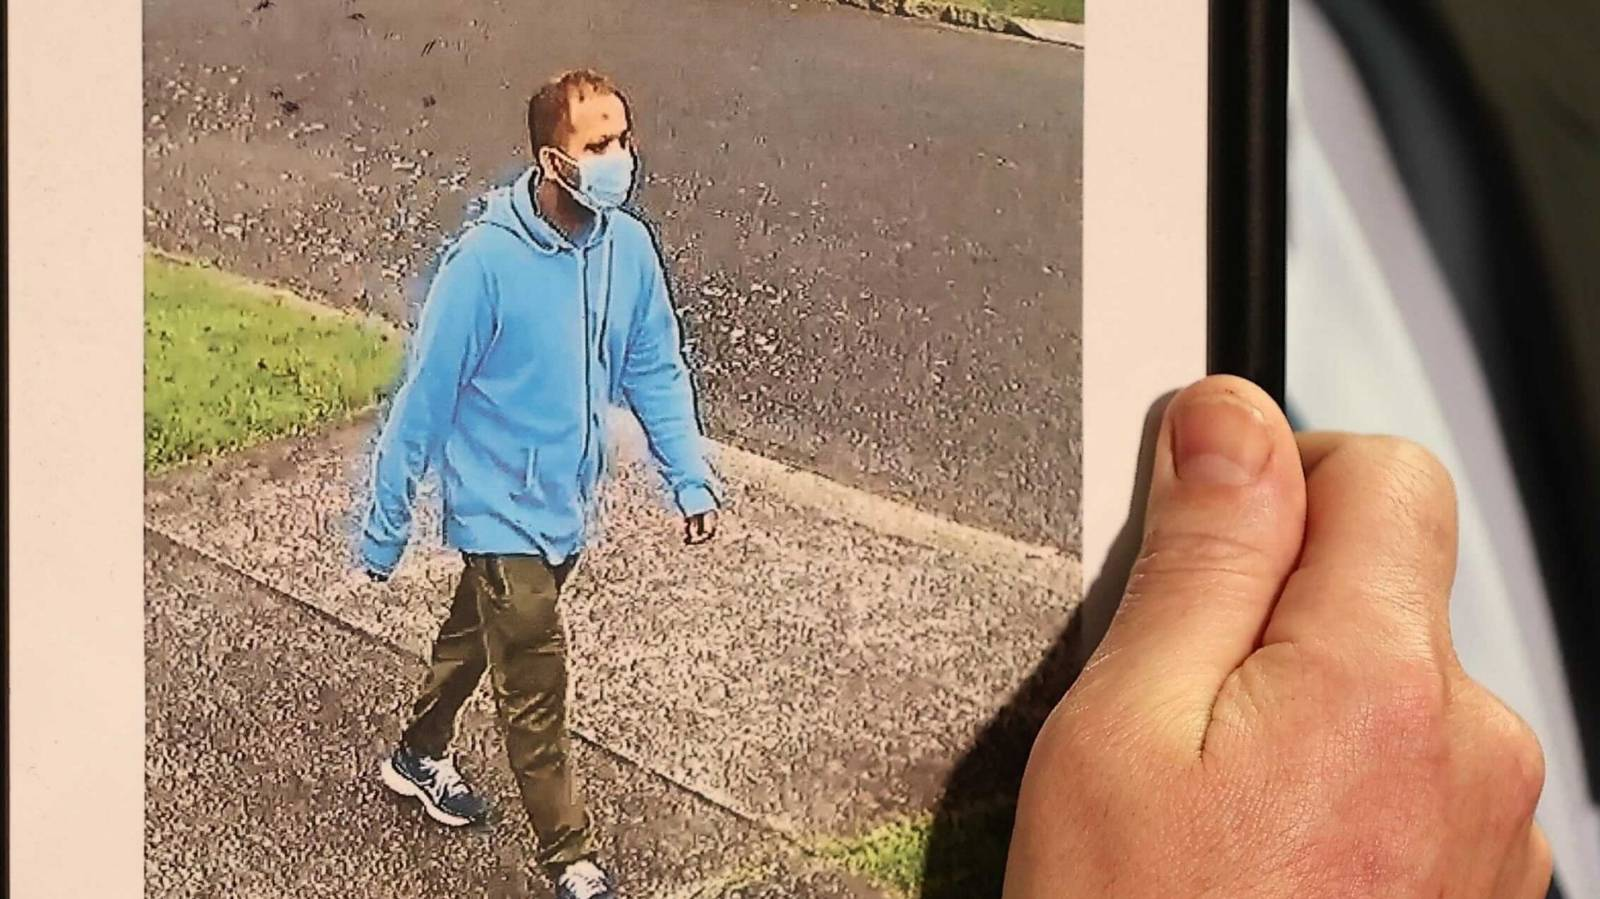 Police identify person of interest after woman's death in Mt Albert